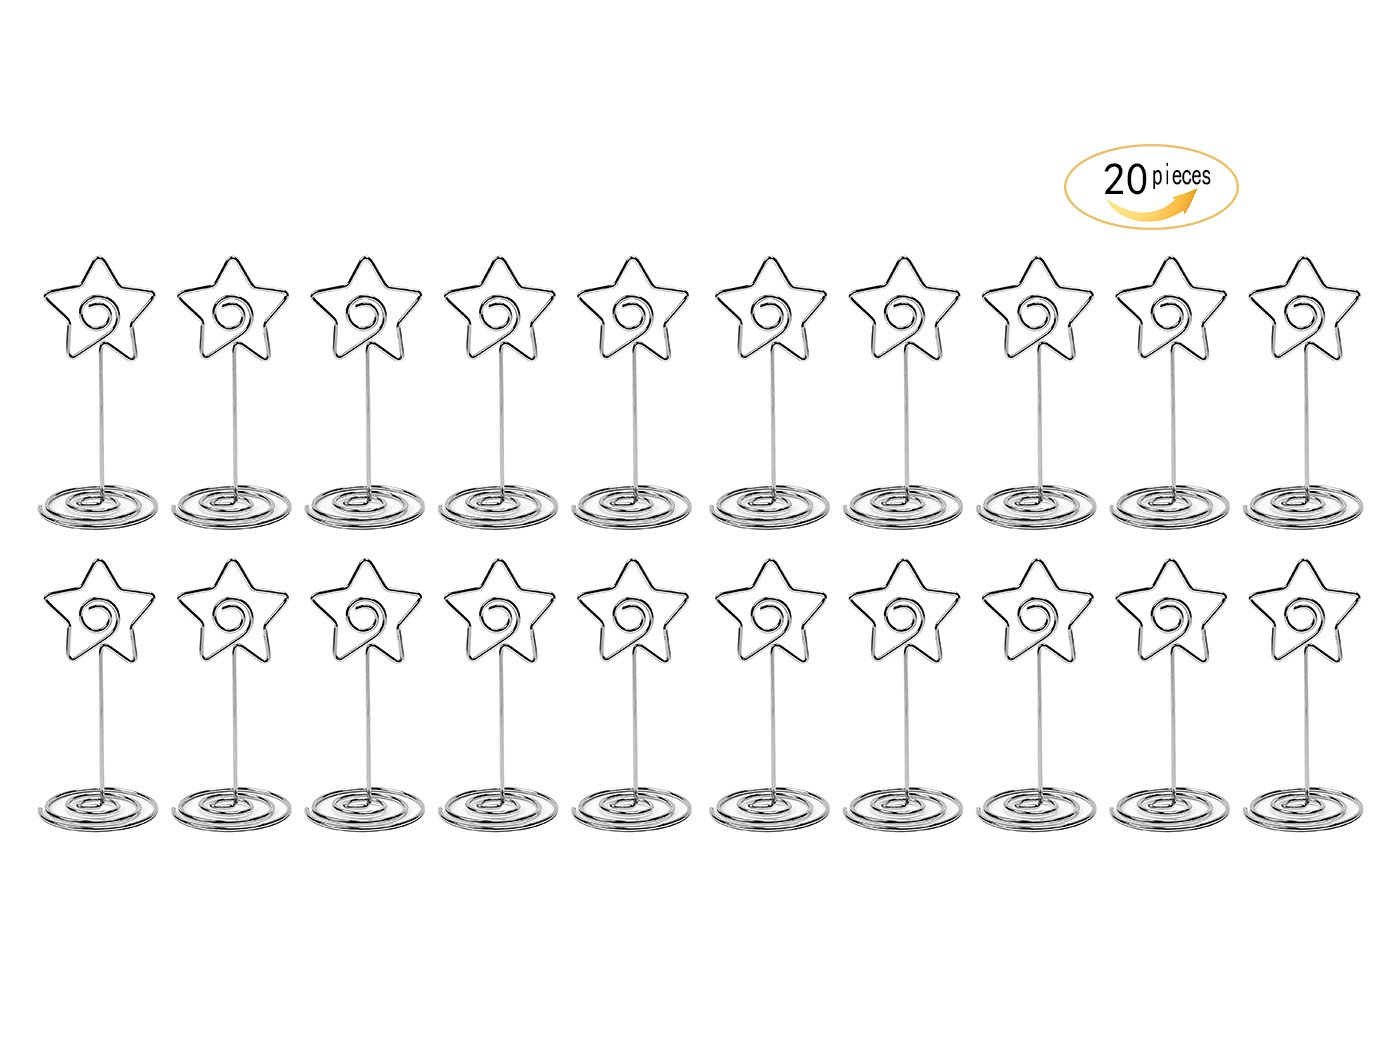 20 Pcs 85mm Tall Star Shape Metal Table Number Holder Stands for Weddings Party Gatherings, Place Card Holder,Photo/Picture Holder by TADAE